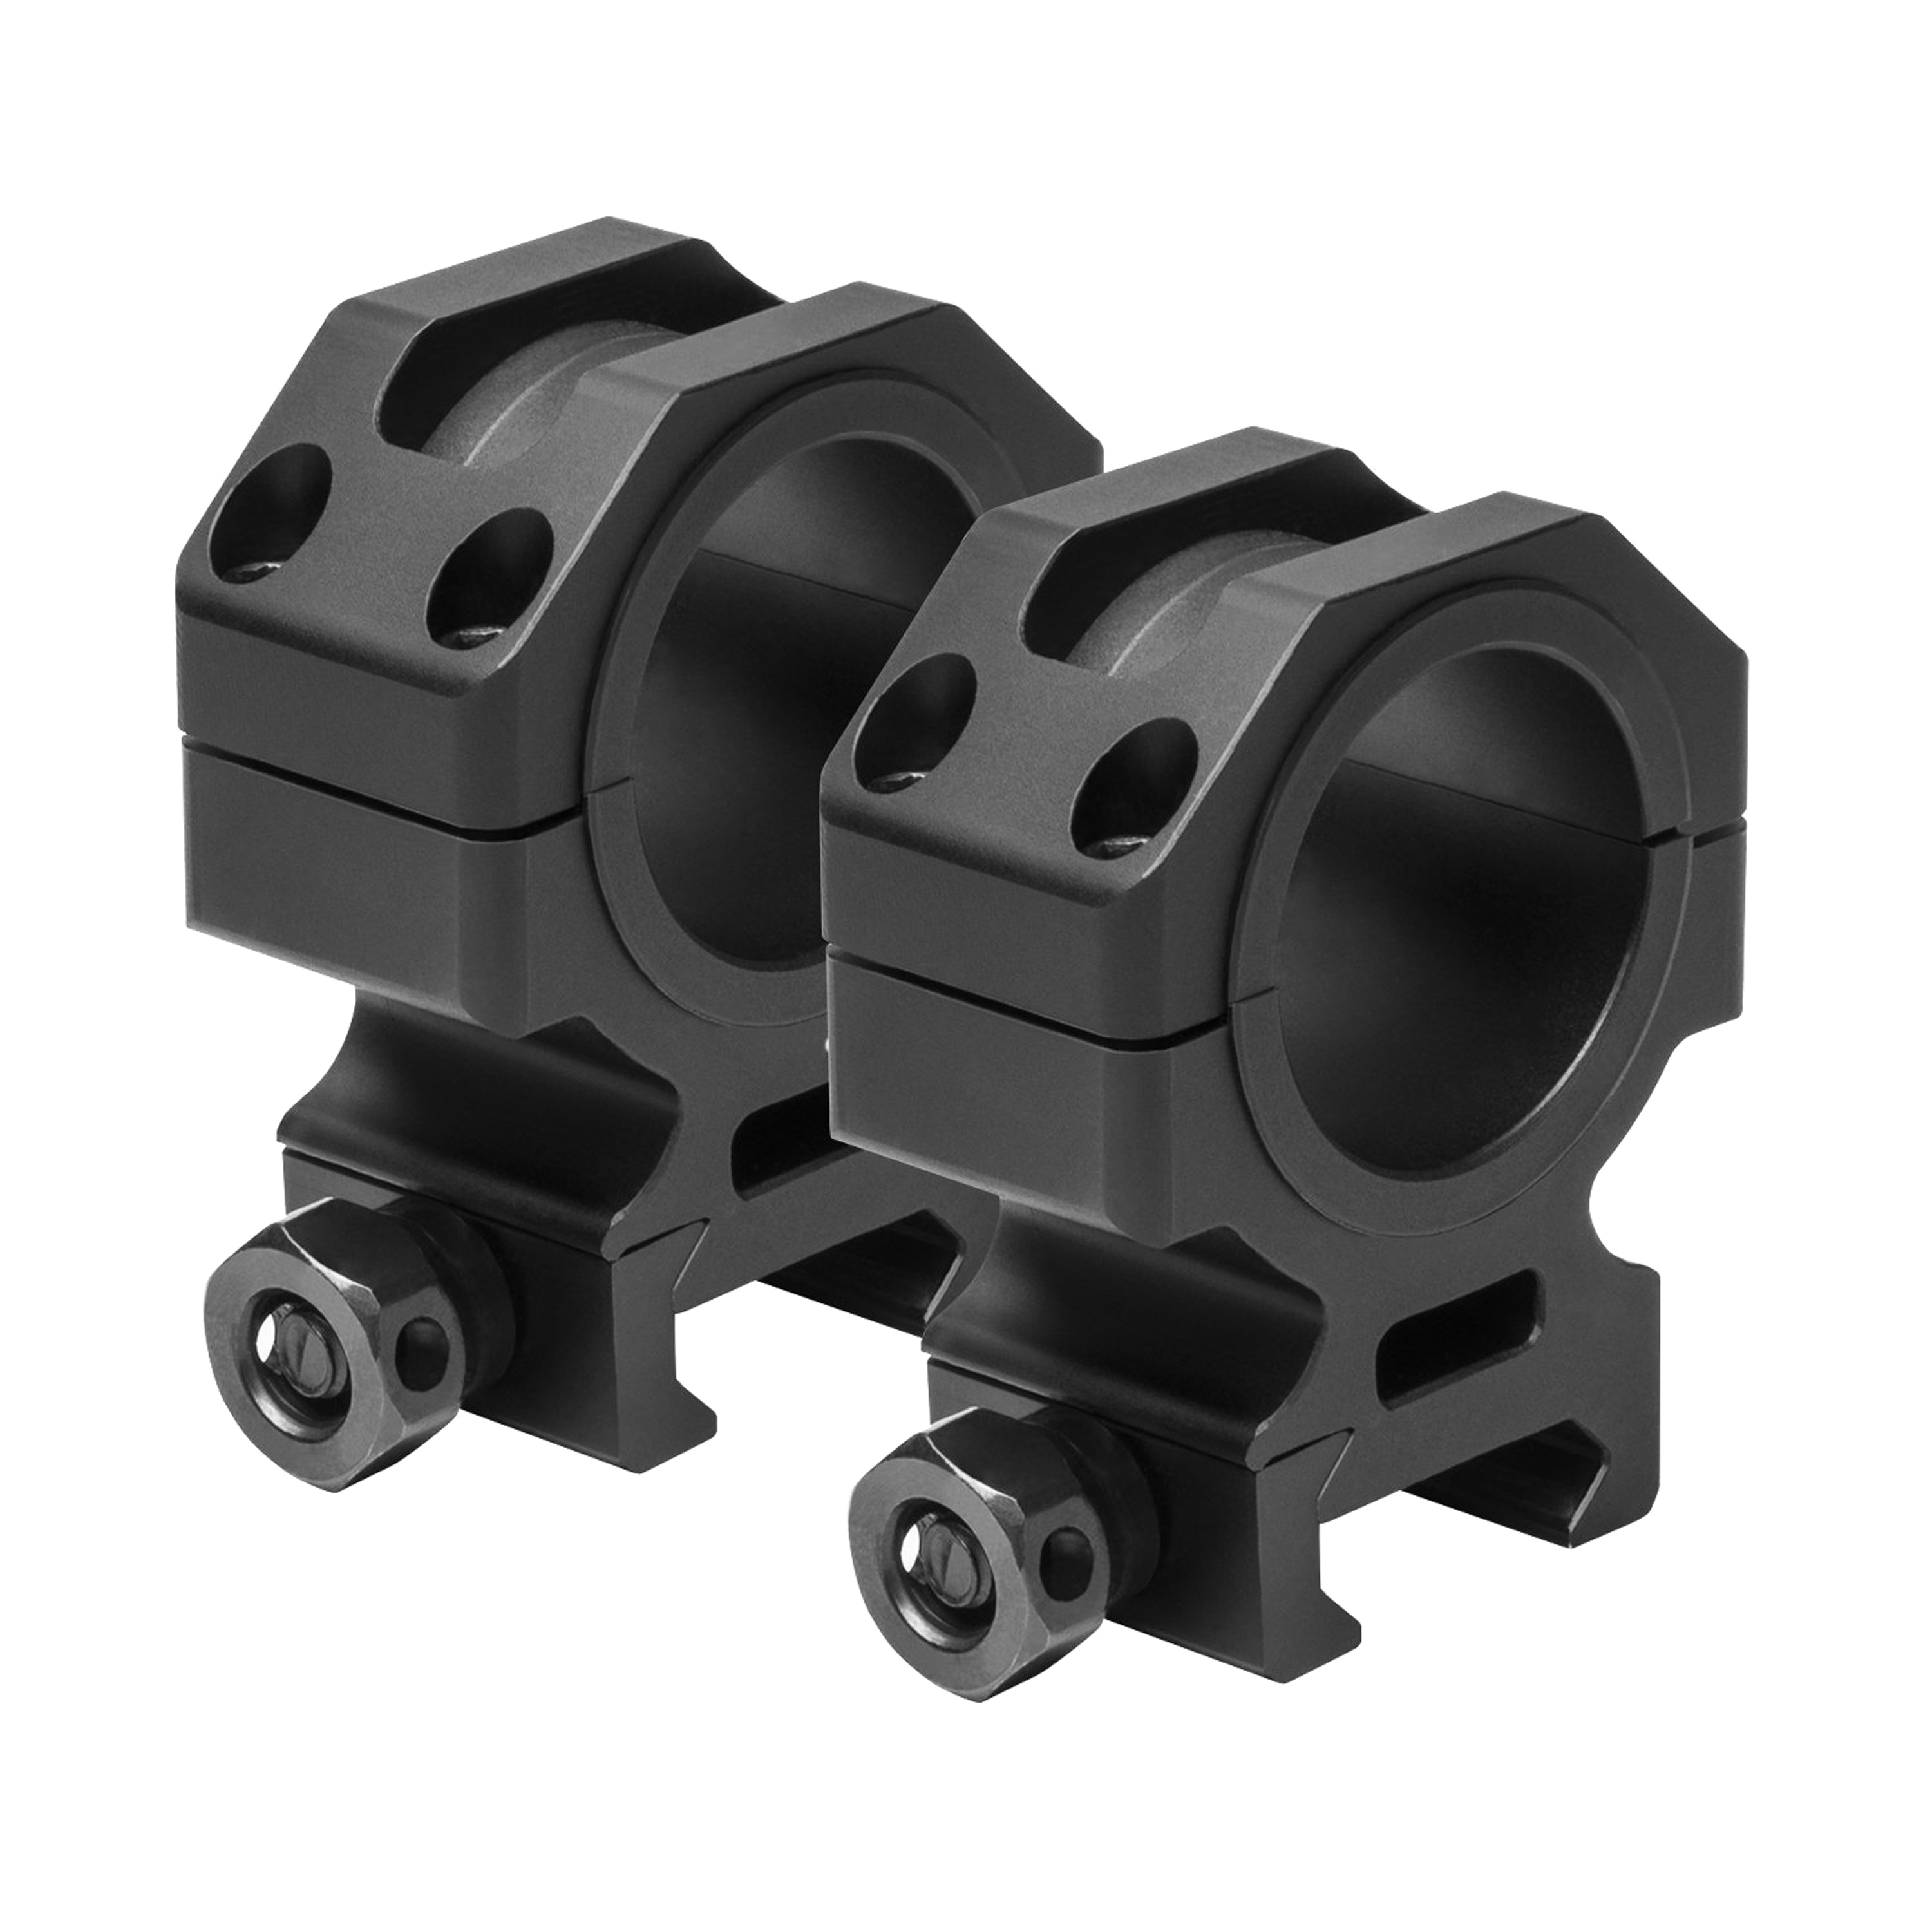 "NcStar 30mm Tactical Rings 1.1"" Height VR30T11"